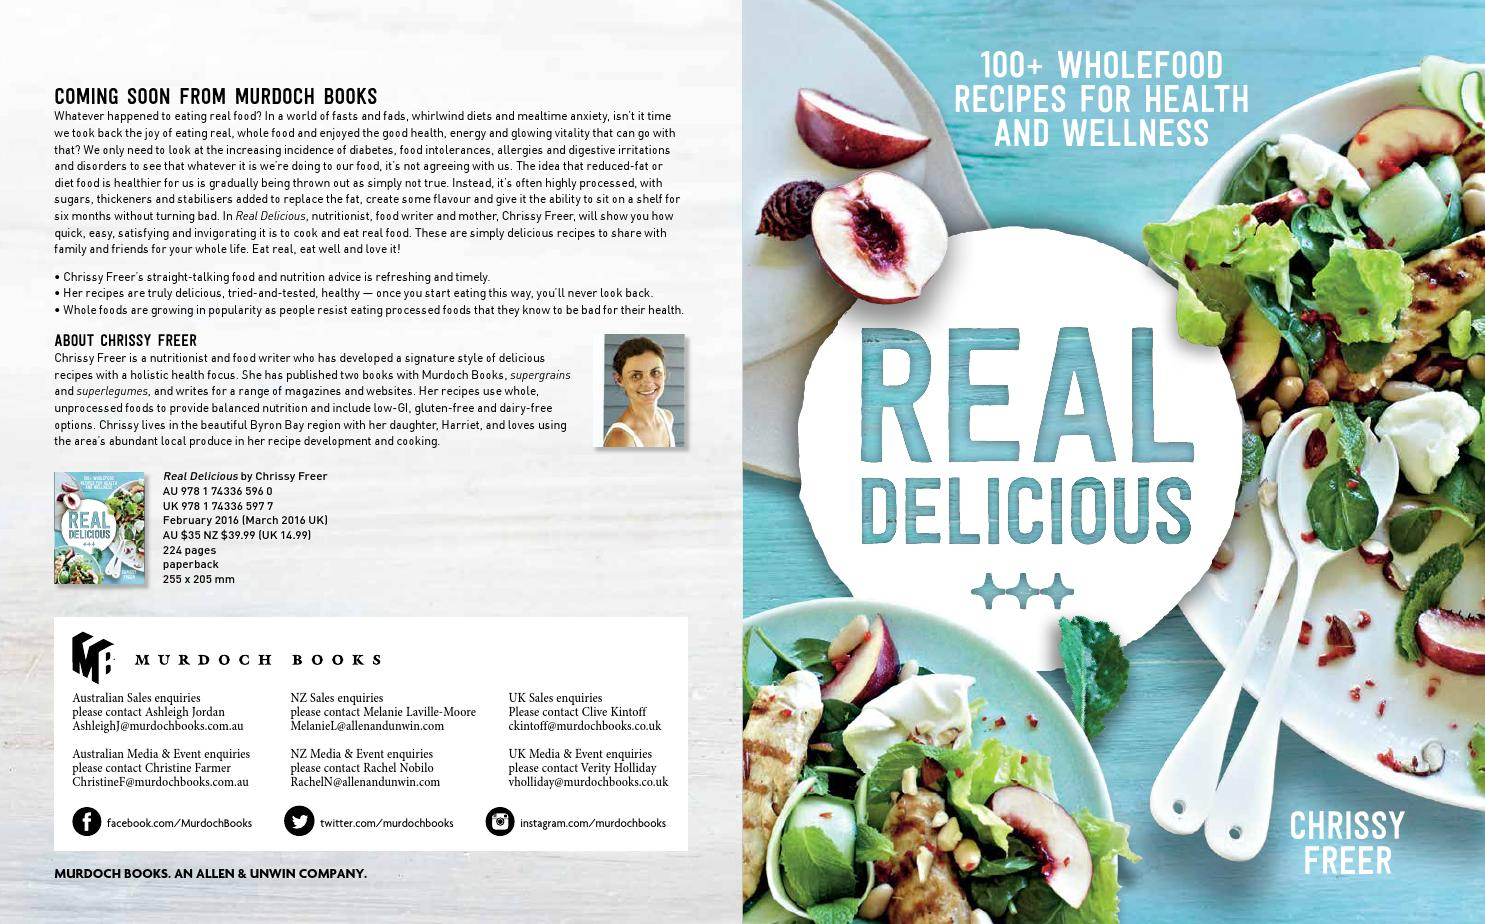 Real delicious chrissy freer february 2016 by murdoch books issuu forumfinder Image collections